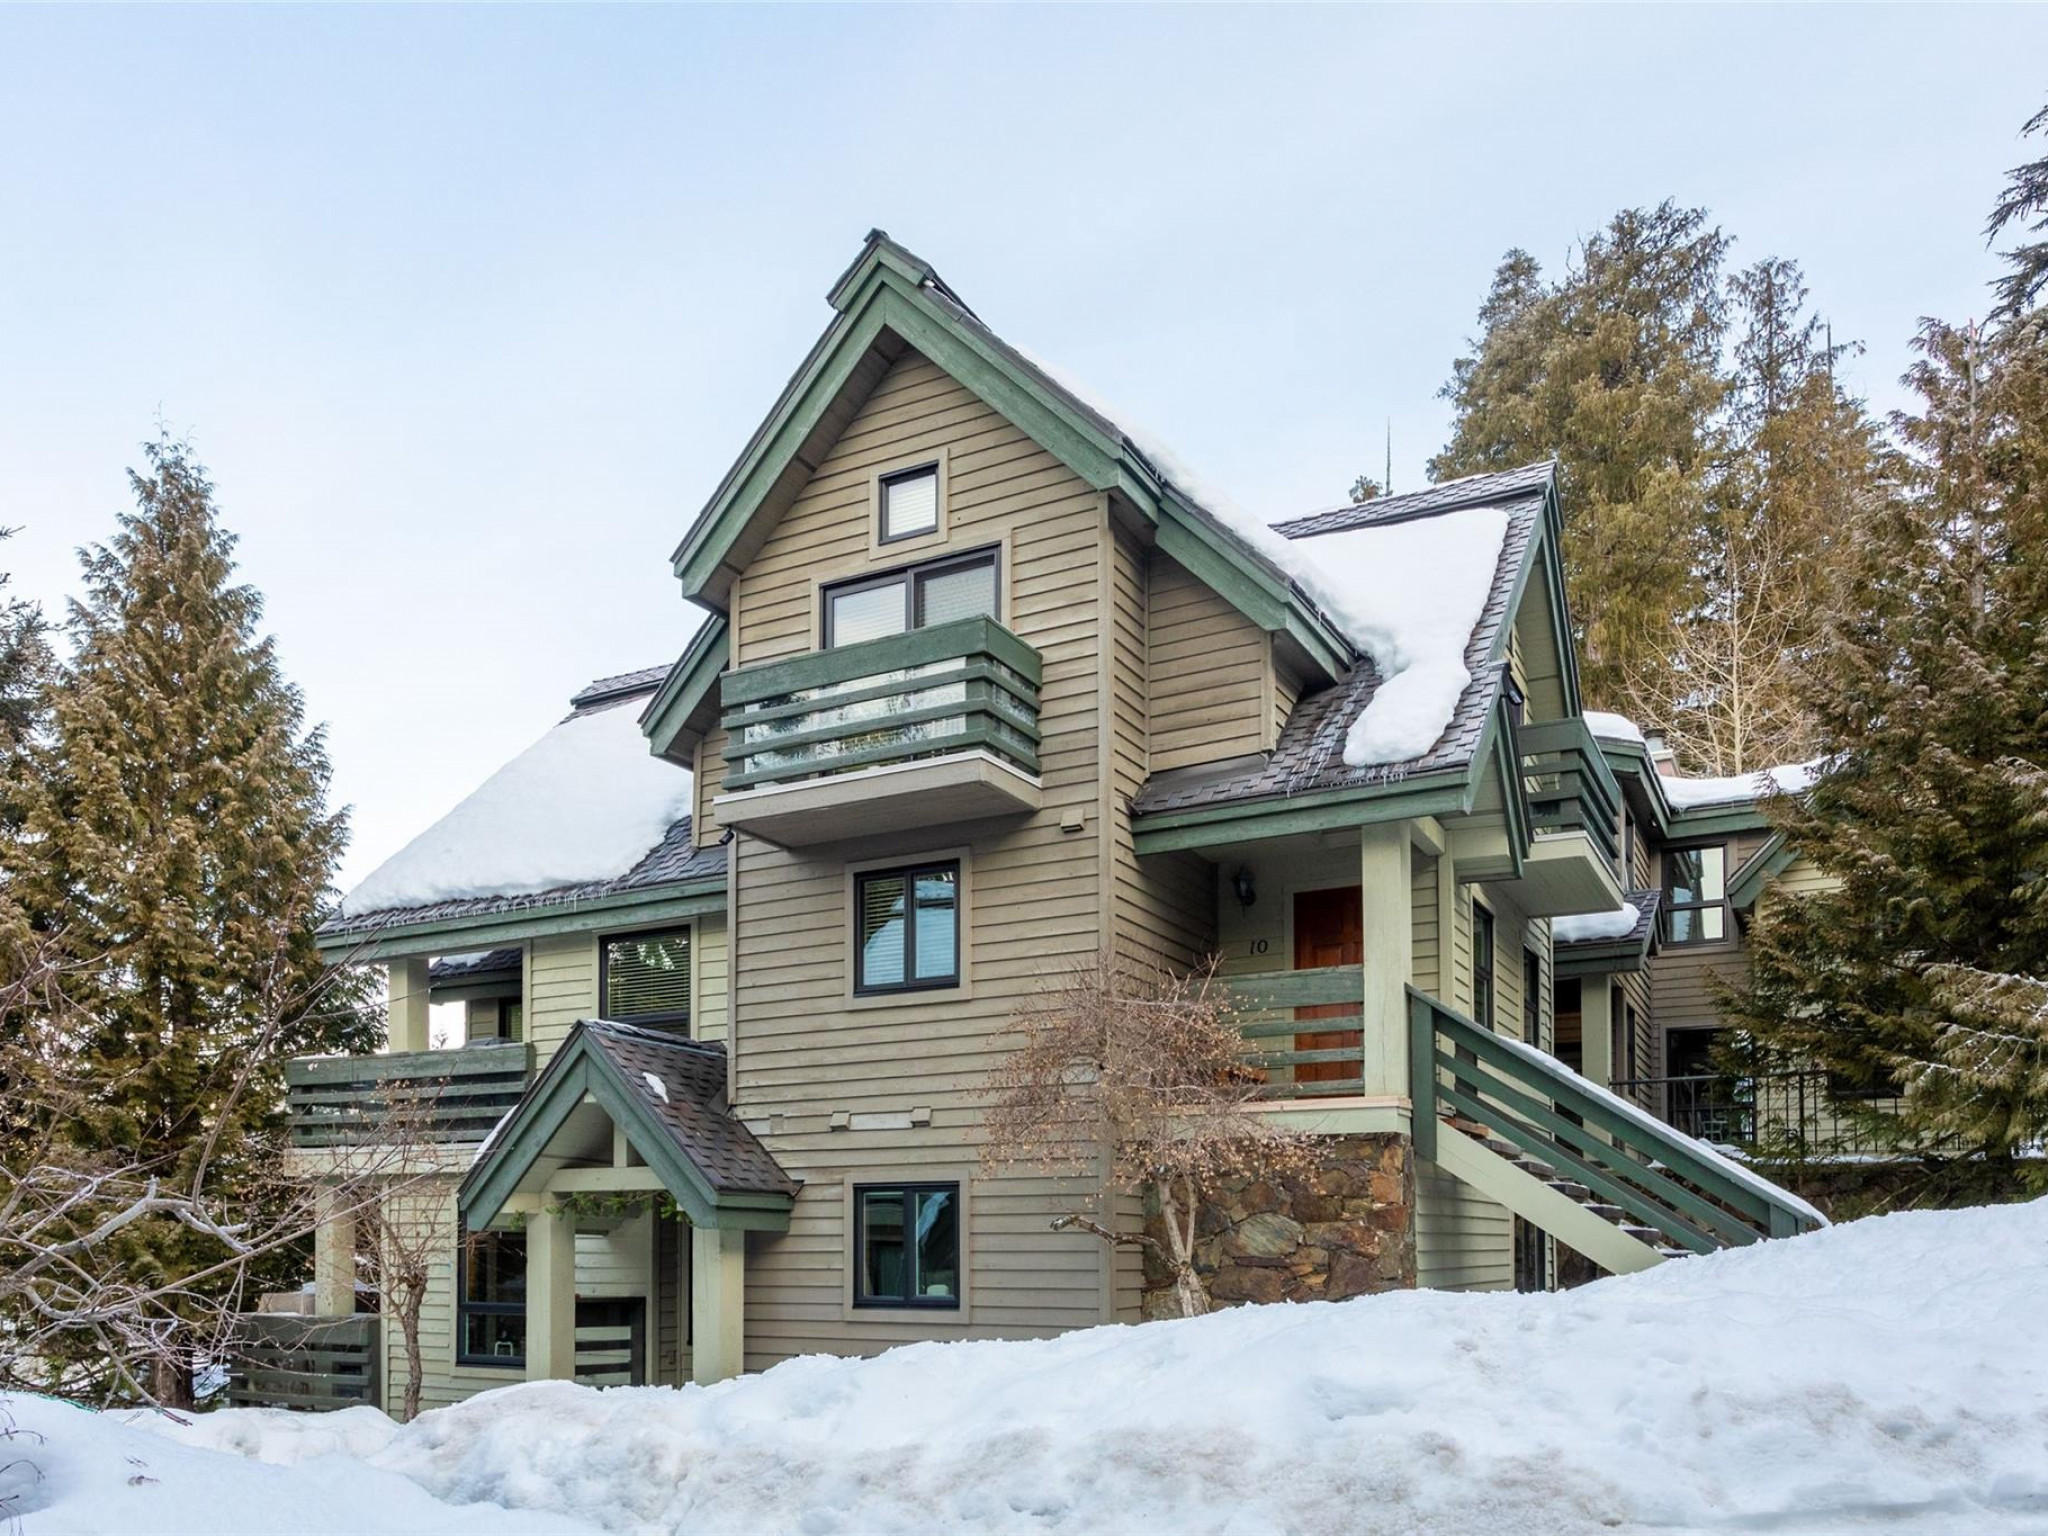 10-4645 Blackcomb Way image 1